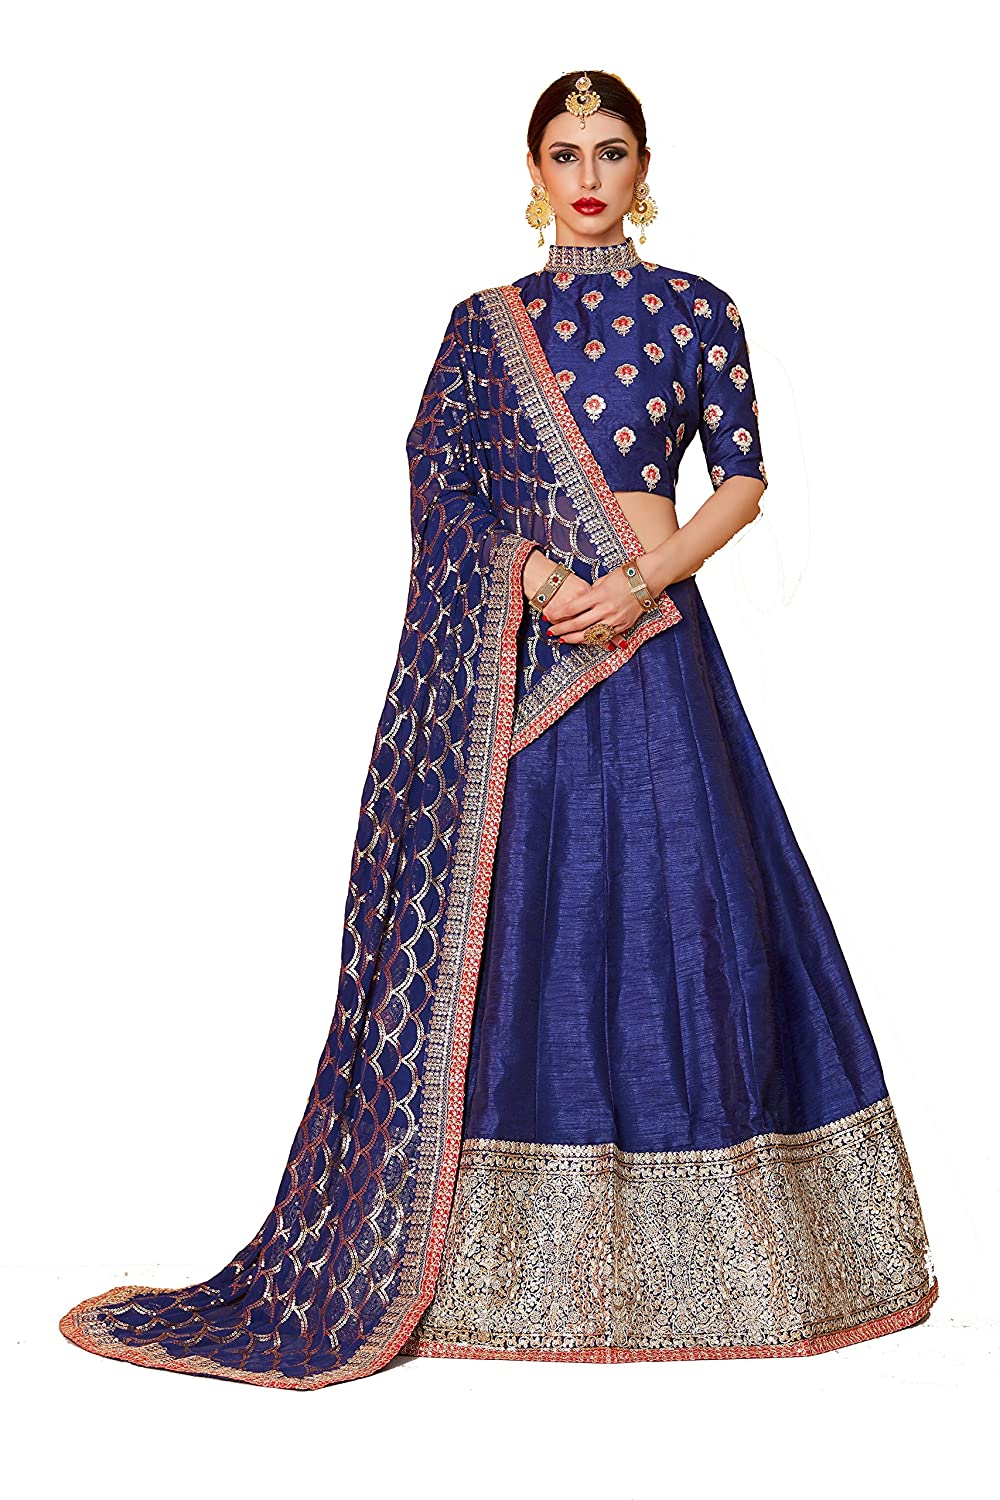 d4df34b6ab7f59 SK Clothing Bridal Collection Art Silk Navy blue butti work lehenga choli  set for women(AD608, Free size): Amazon.in: Clothing & Accessories